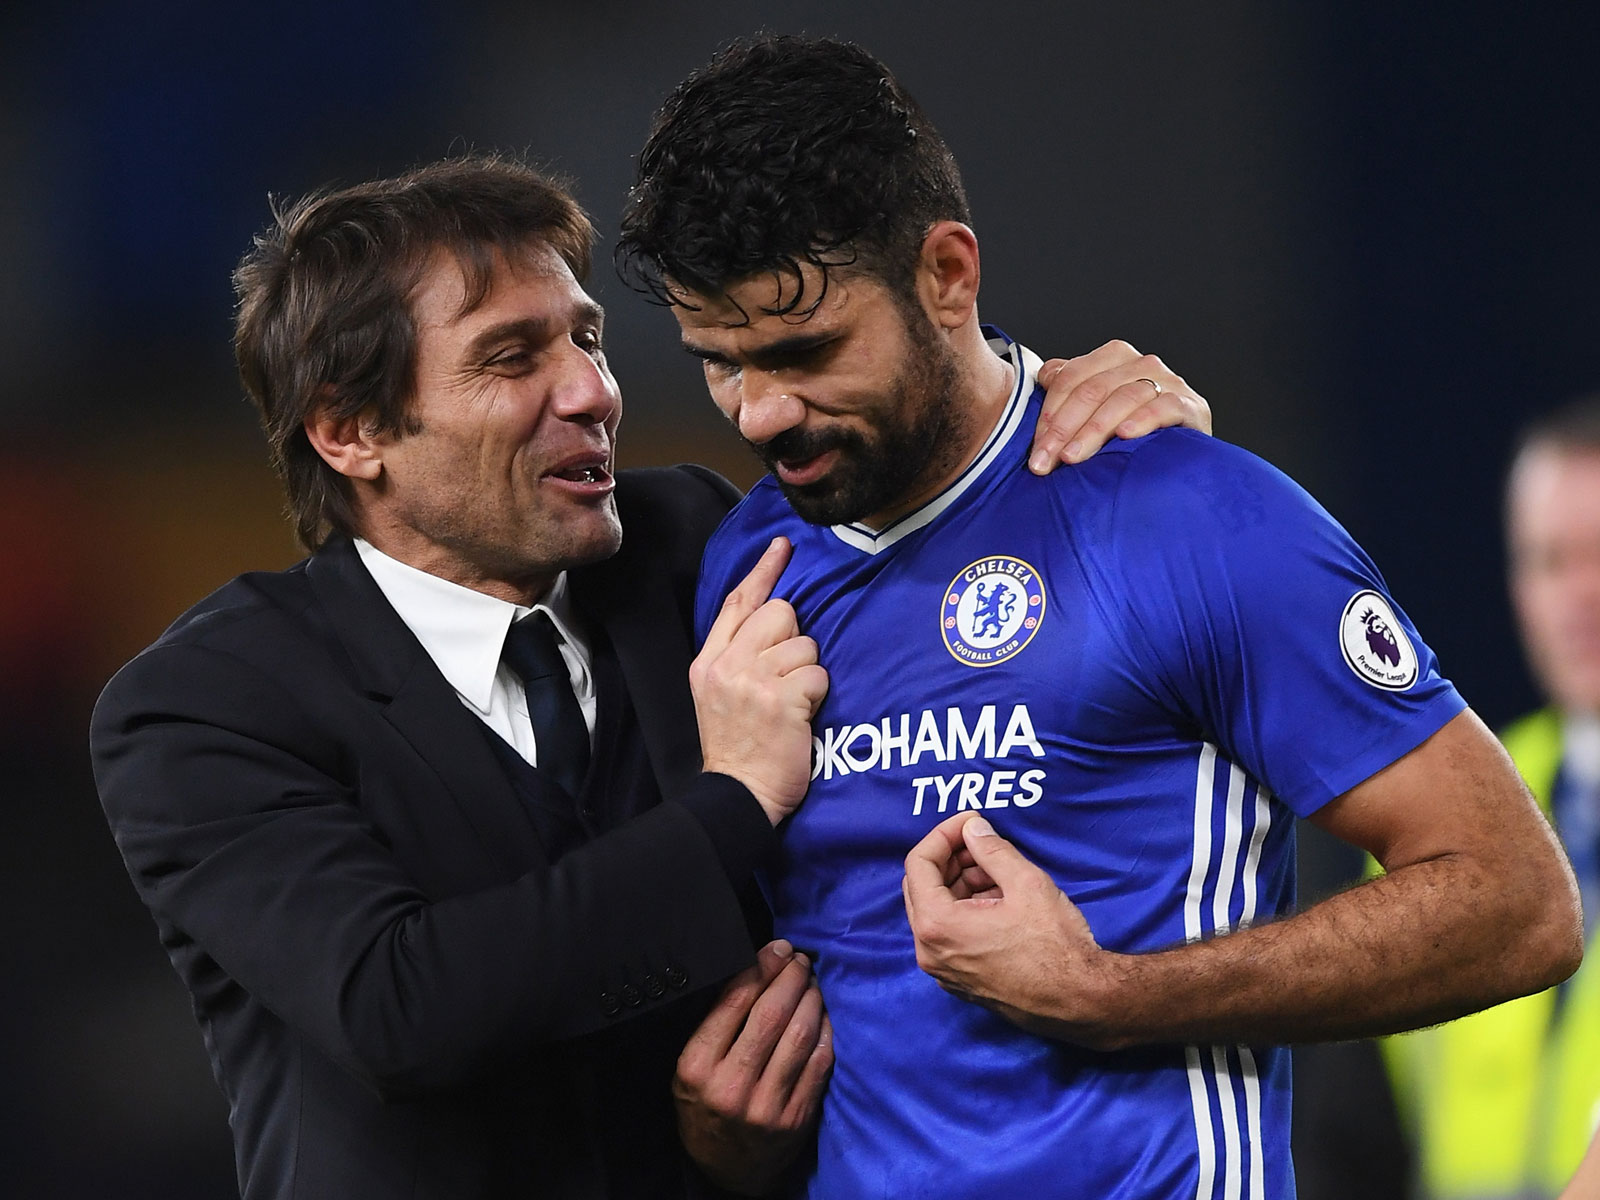 Antonio Conte has made it clear he has no plans for Diego Costa at Chelsea